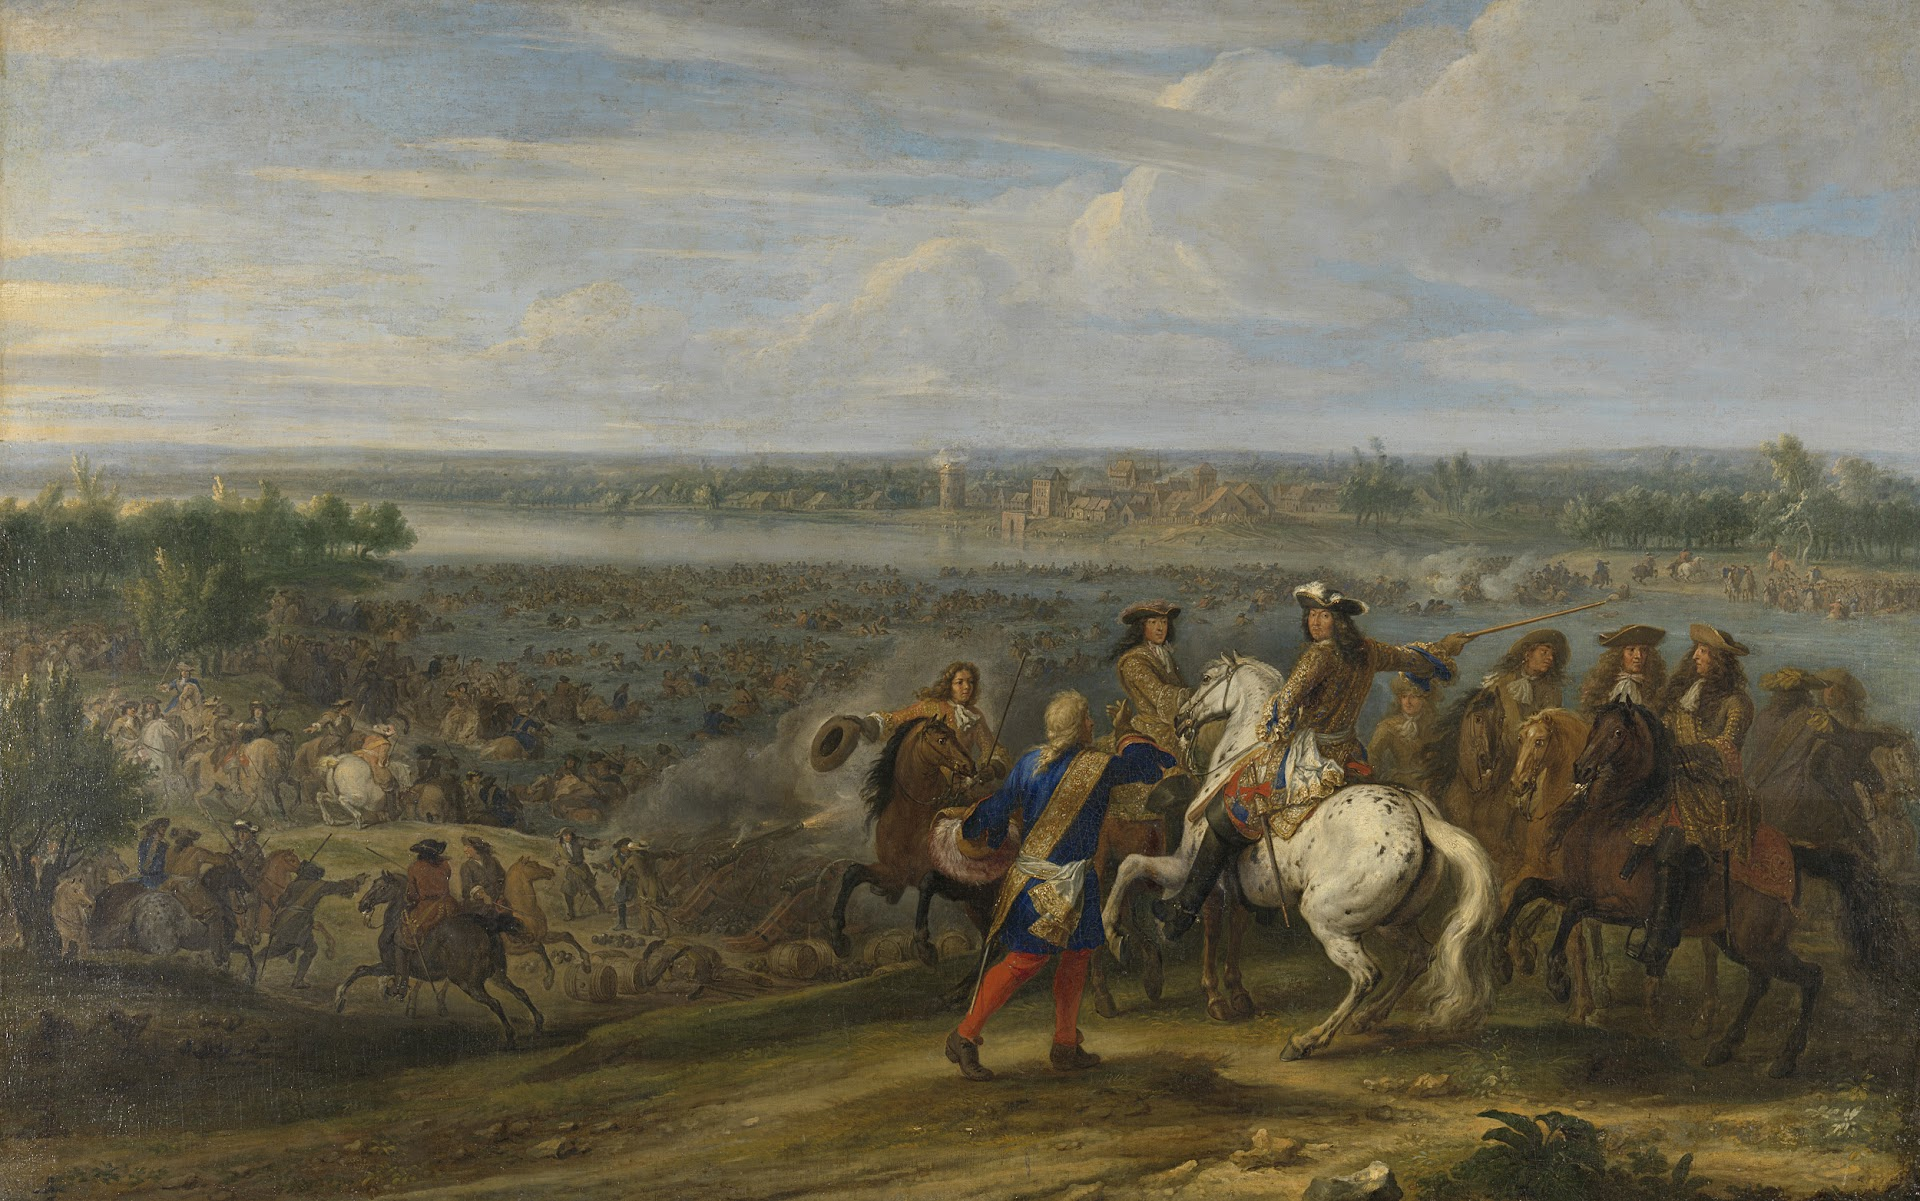 Louis XIV crossing the Rhine at Lobith, 12 June 1672. Adam Frans van der